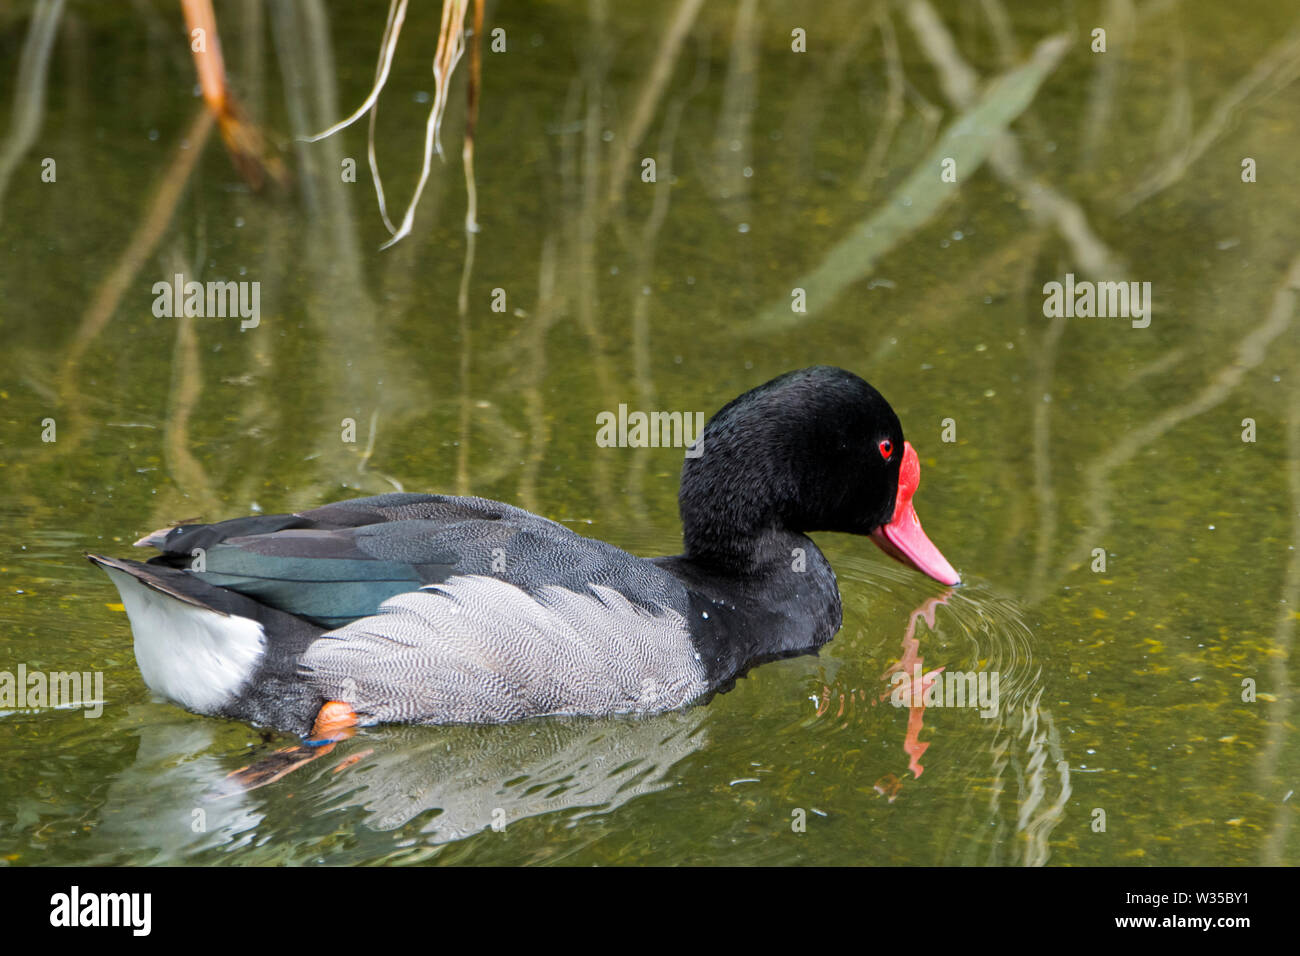 Male rosy-billed pochard / rosybill / rosybill pochard (Netta peposaca) swimming in pond, native to Argentina, Chile, Paraguay, Uruguay and Brazil - Stock Image